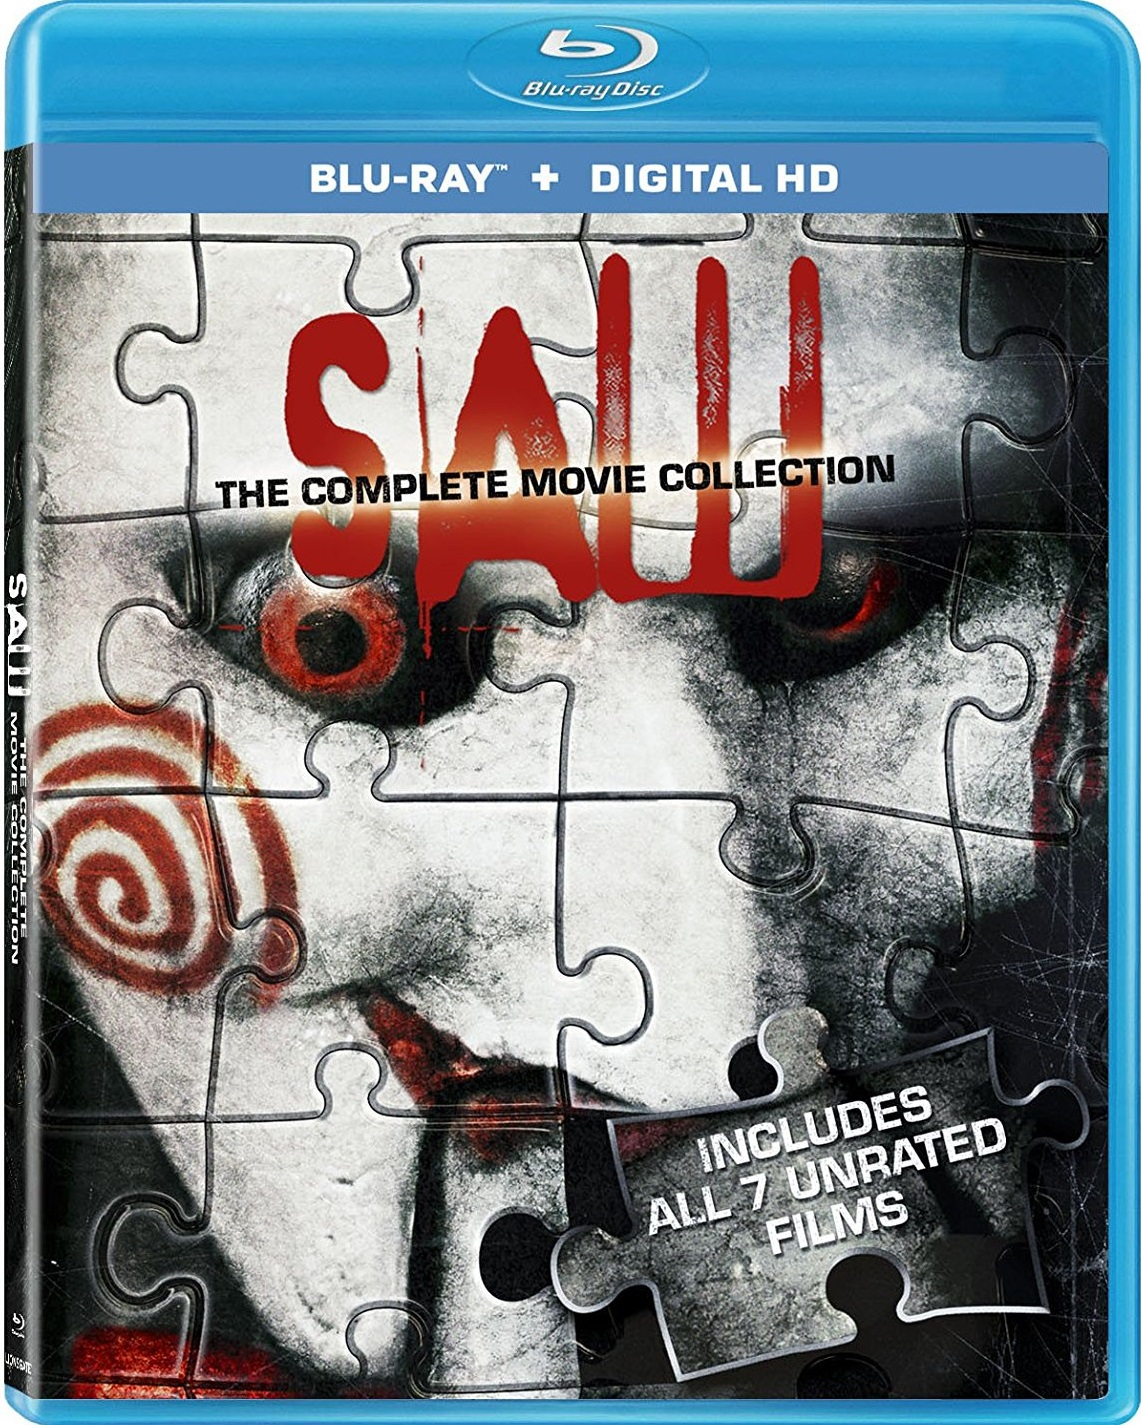 Saw The Complete Movie Collection 1080p BD25